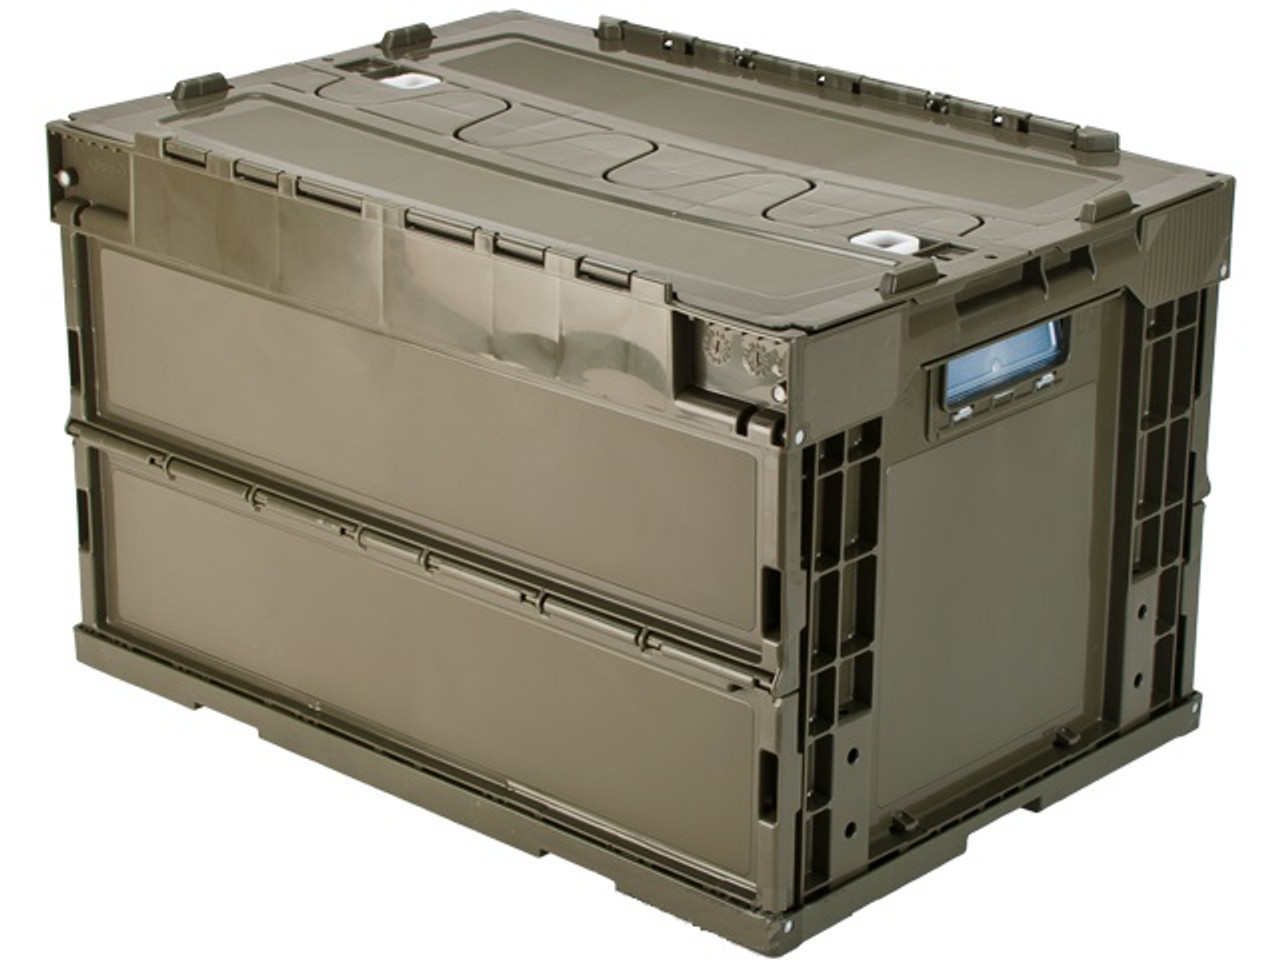 b62c247f2af Laylax Tactical Folding Military Storage Box Container - Olive Green ...